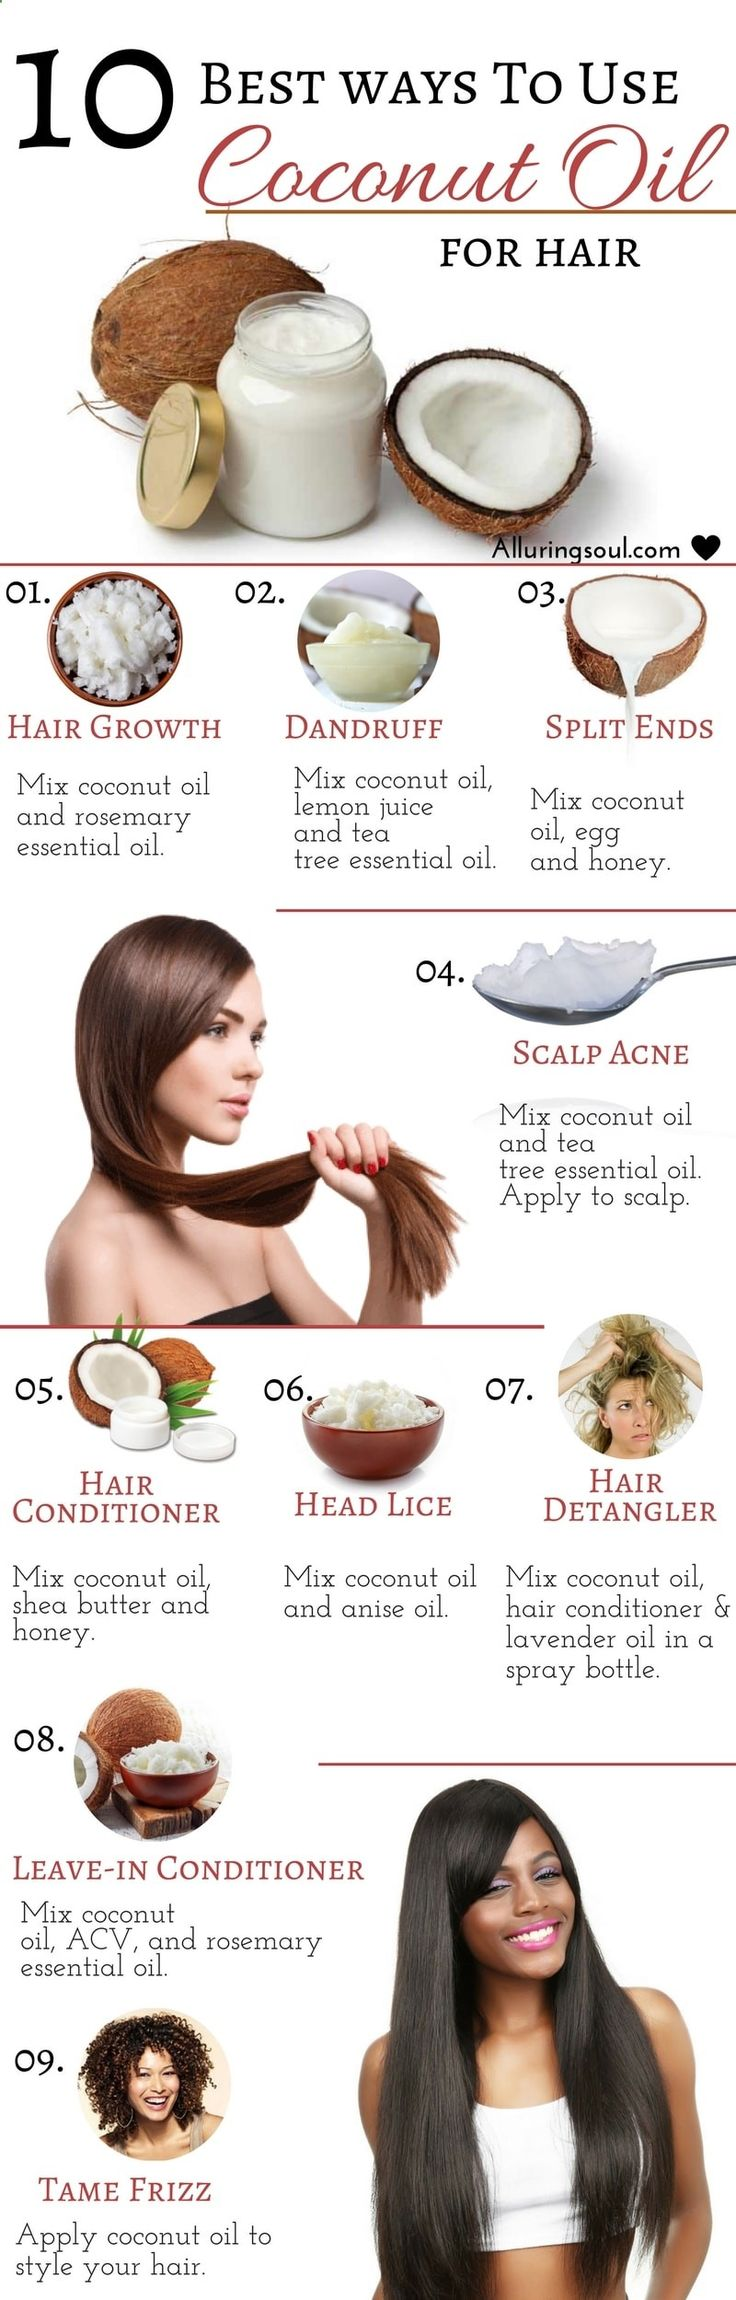 Coconut oil for hair is being used from centuries. It has the power to make your hair strong, shiny, and much more benefits to reap from it. Coconut oil is not just the ordinary oil, it's benefits are beyond skin and hair. Coconut oil can give you lustrou